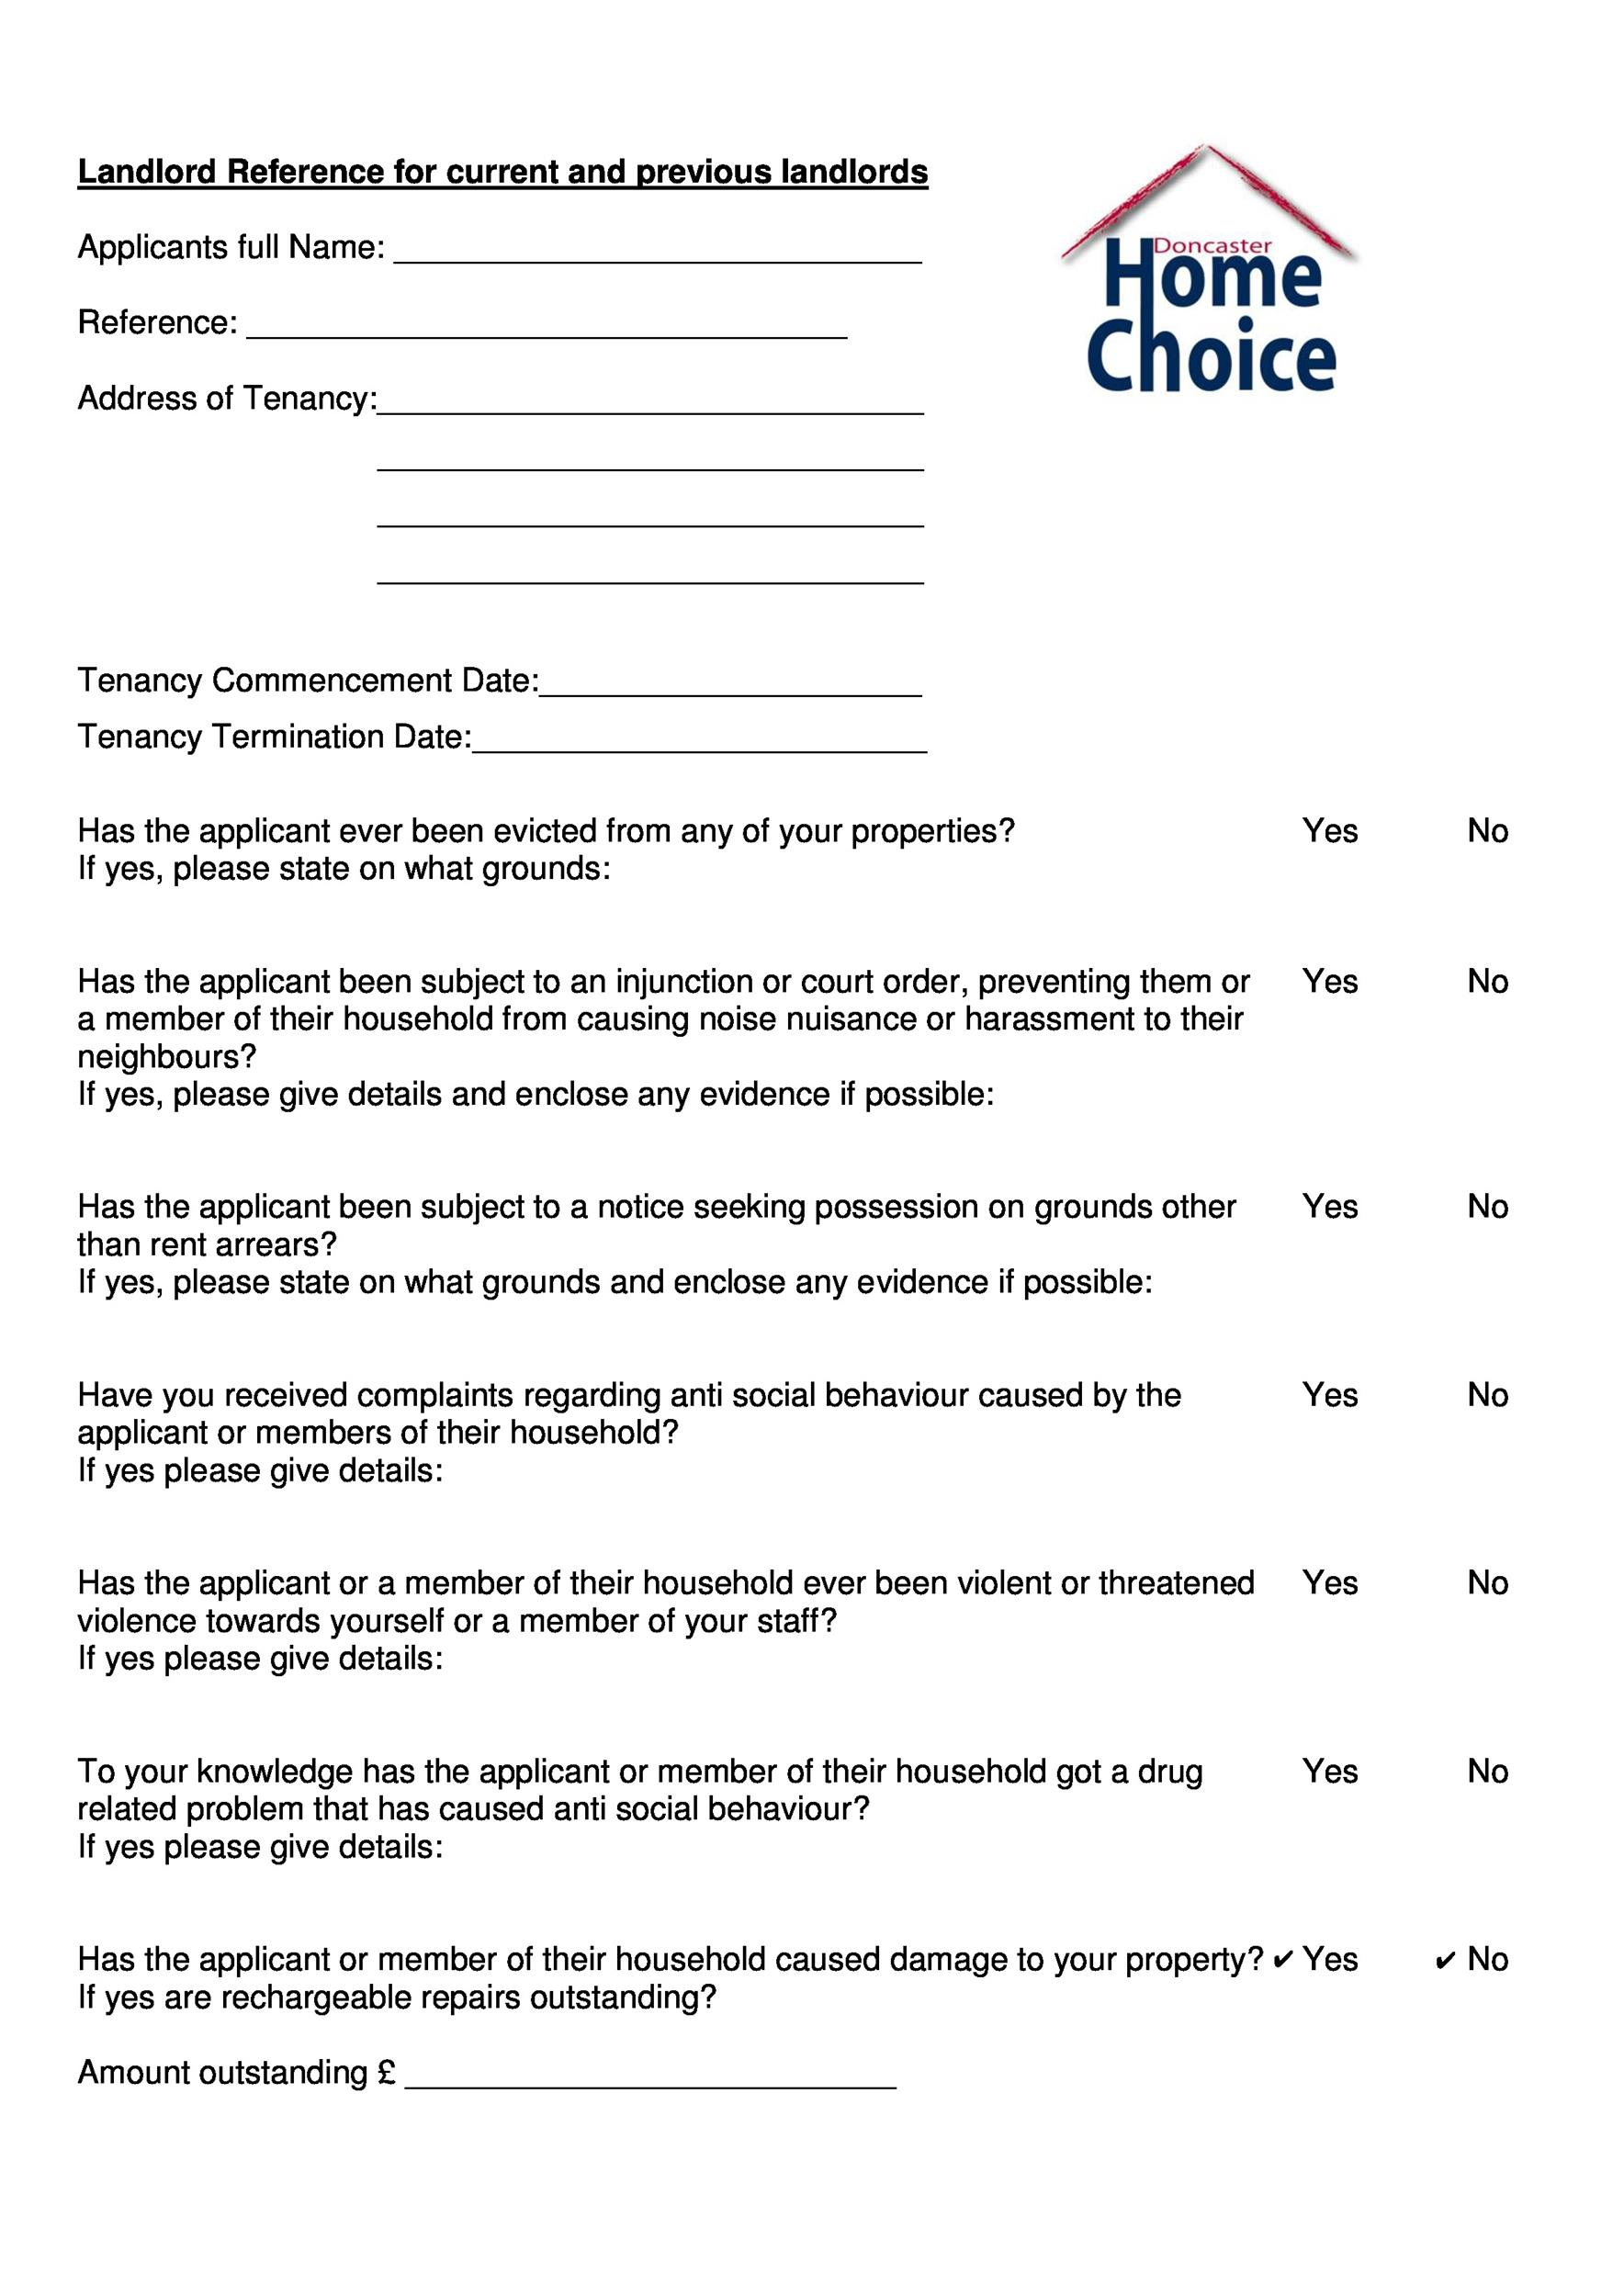 landlord reference form 40  Landlord Reference Letters